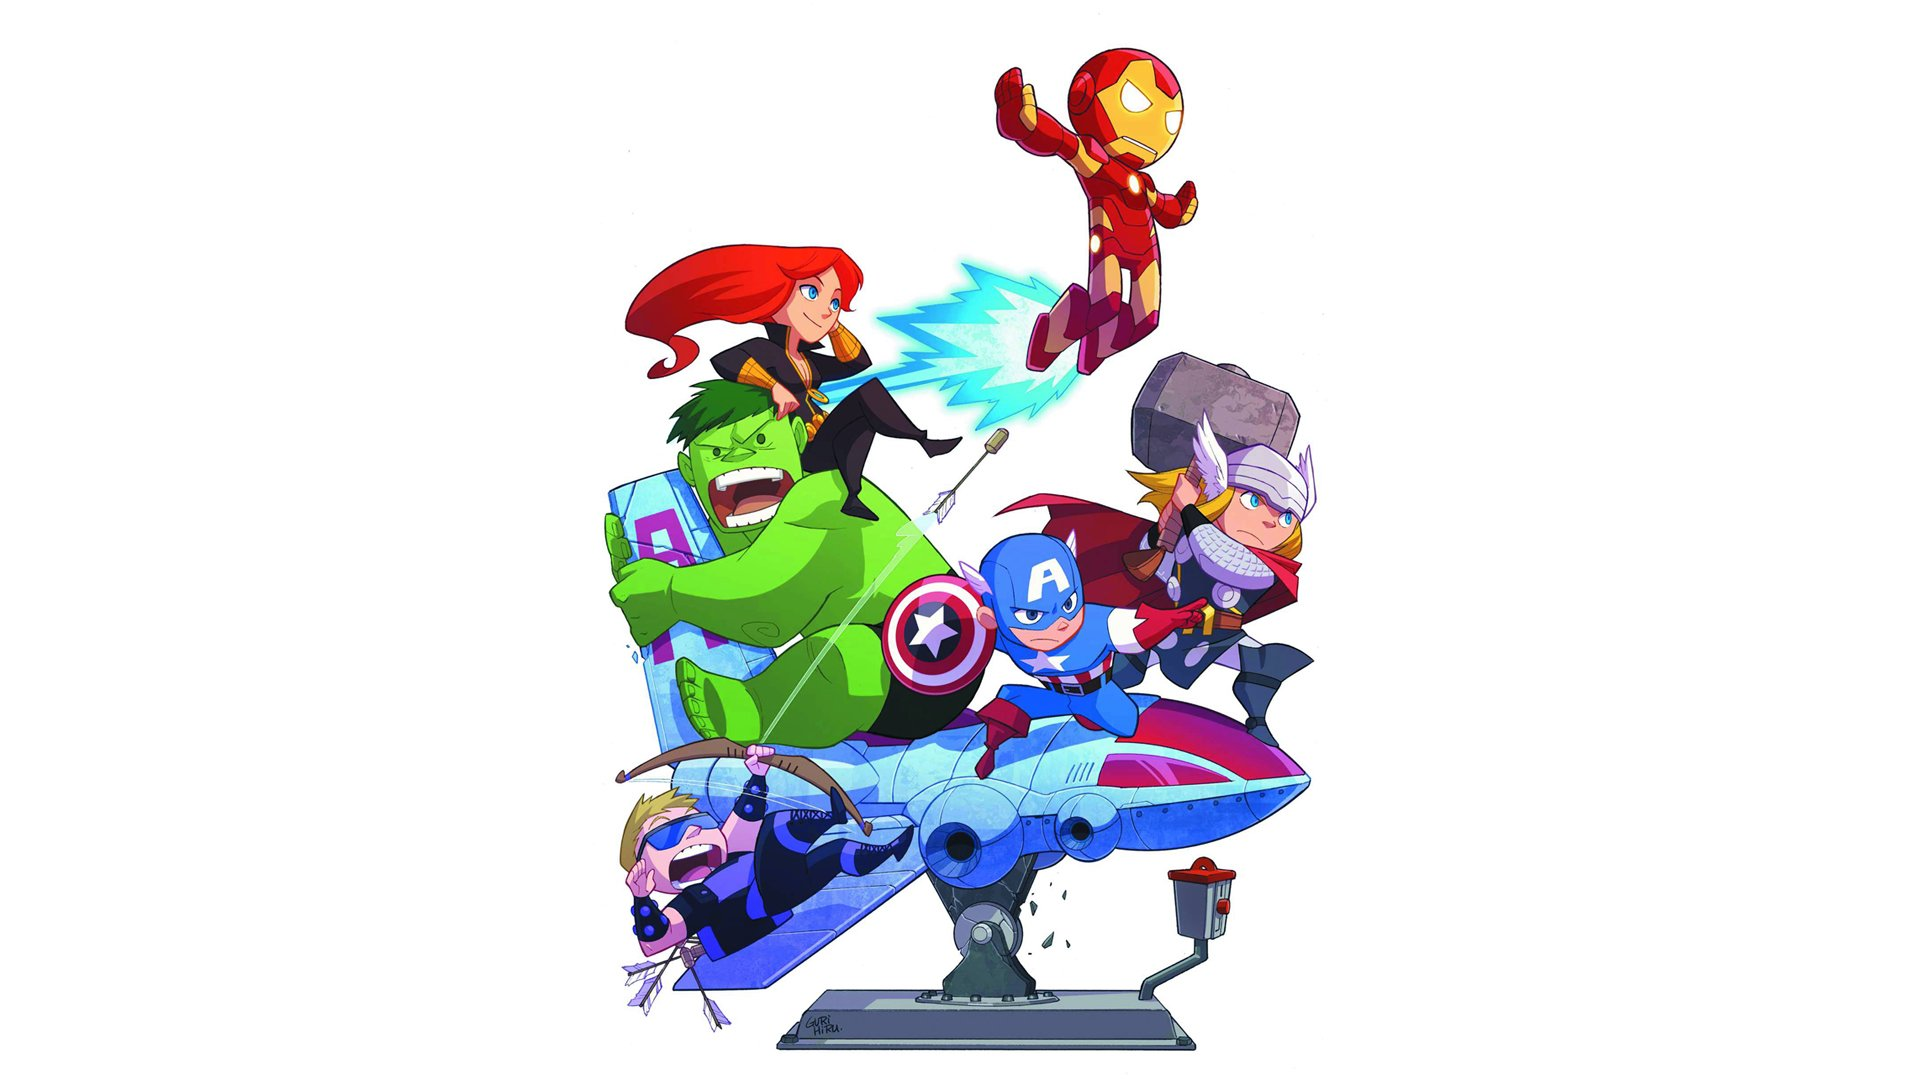 Comics - Avengers  Black Widow Iron Man Hulk Captain America Thor Hawkeye Wallpaper